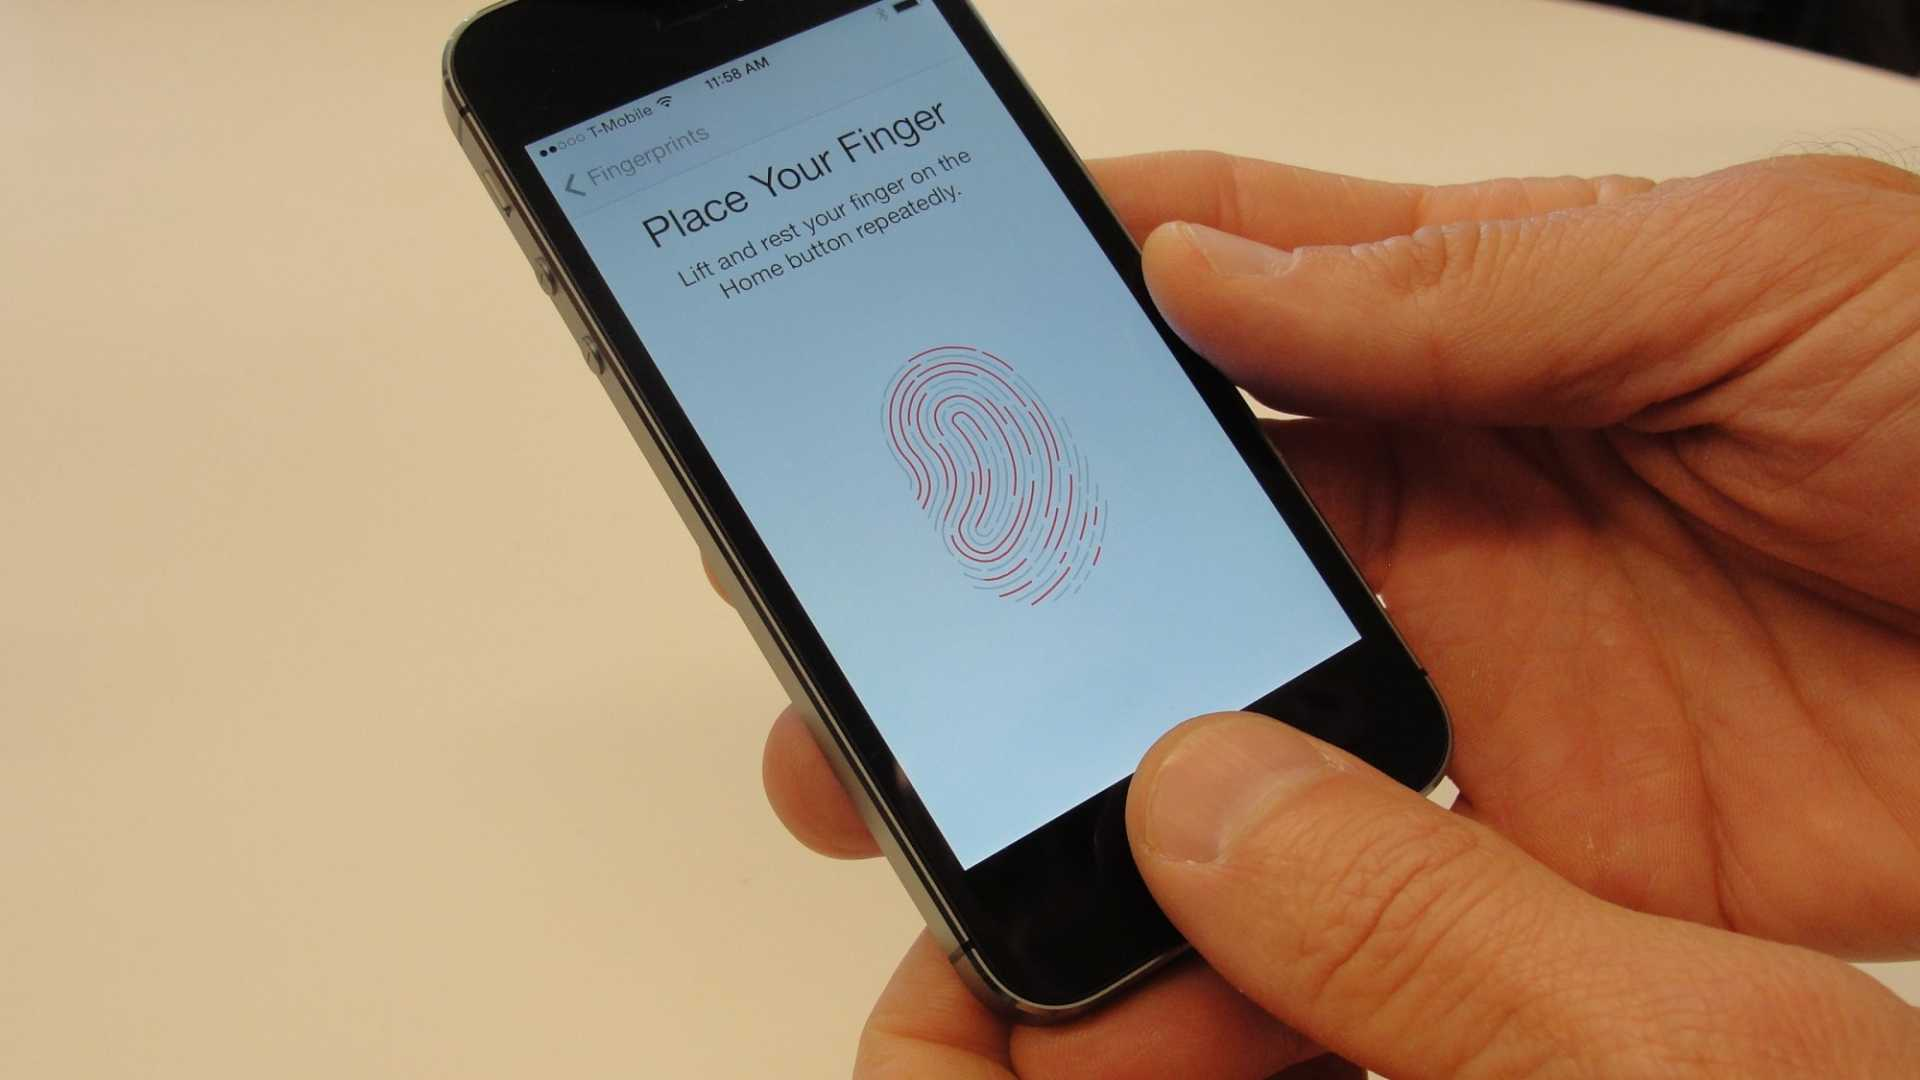 Using your fingerprint to open your phone could have legal consequences.